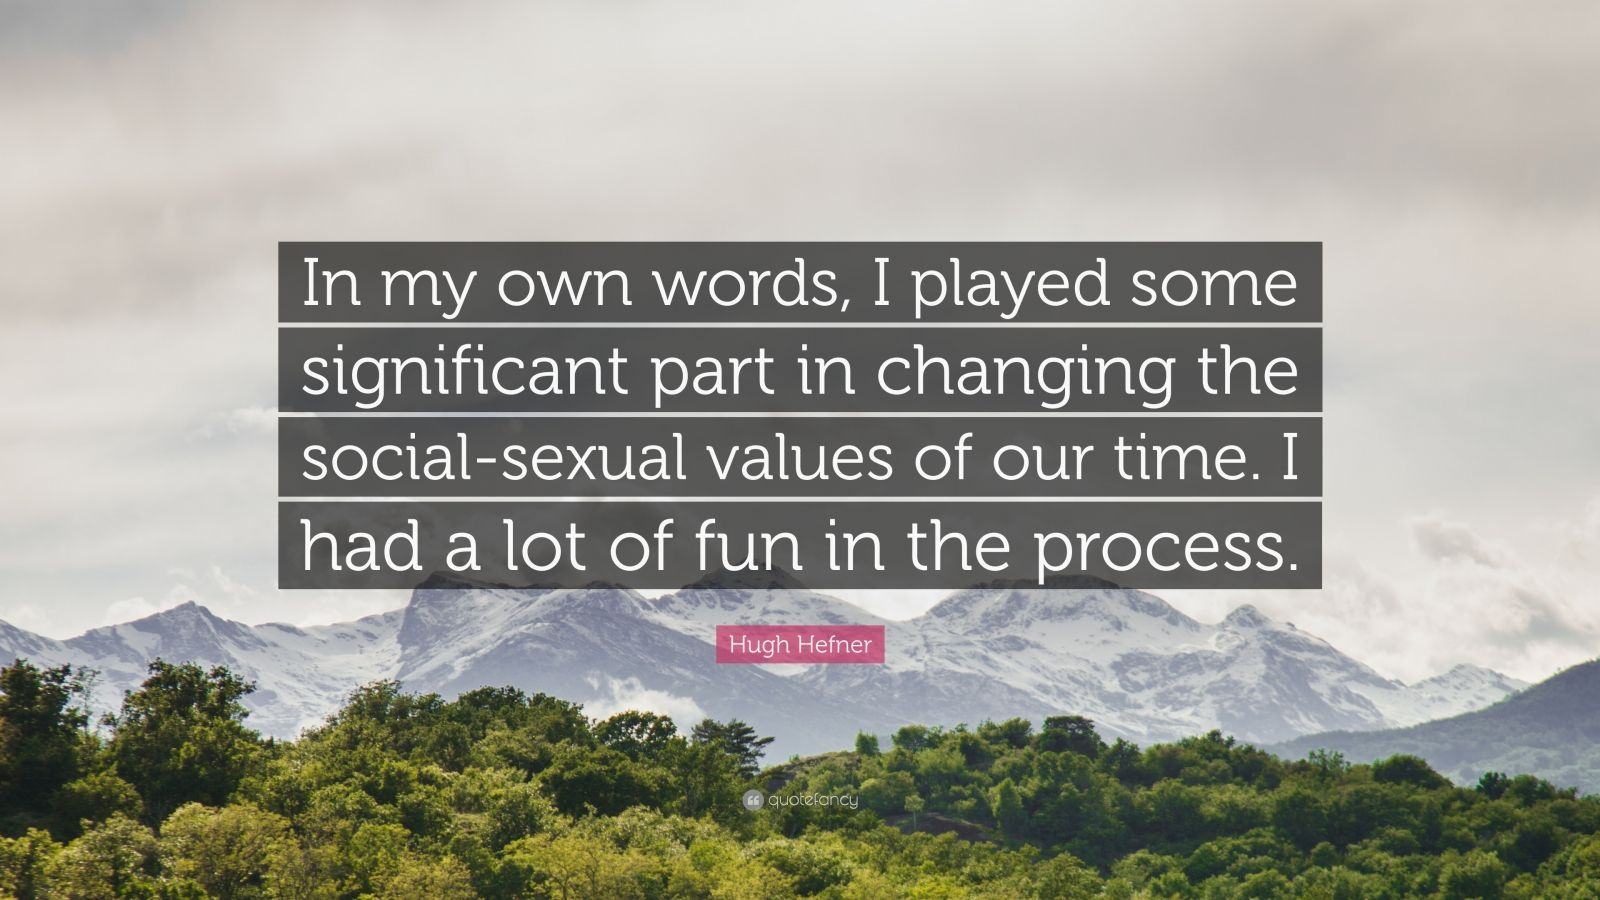 """Hugh Hefner Quote: """"In my own words, I played some significant part in changing the social-sexual values of our time. I had a lot of fun in the process."""""""